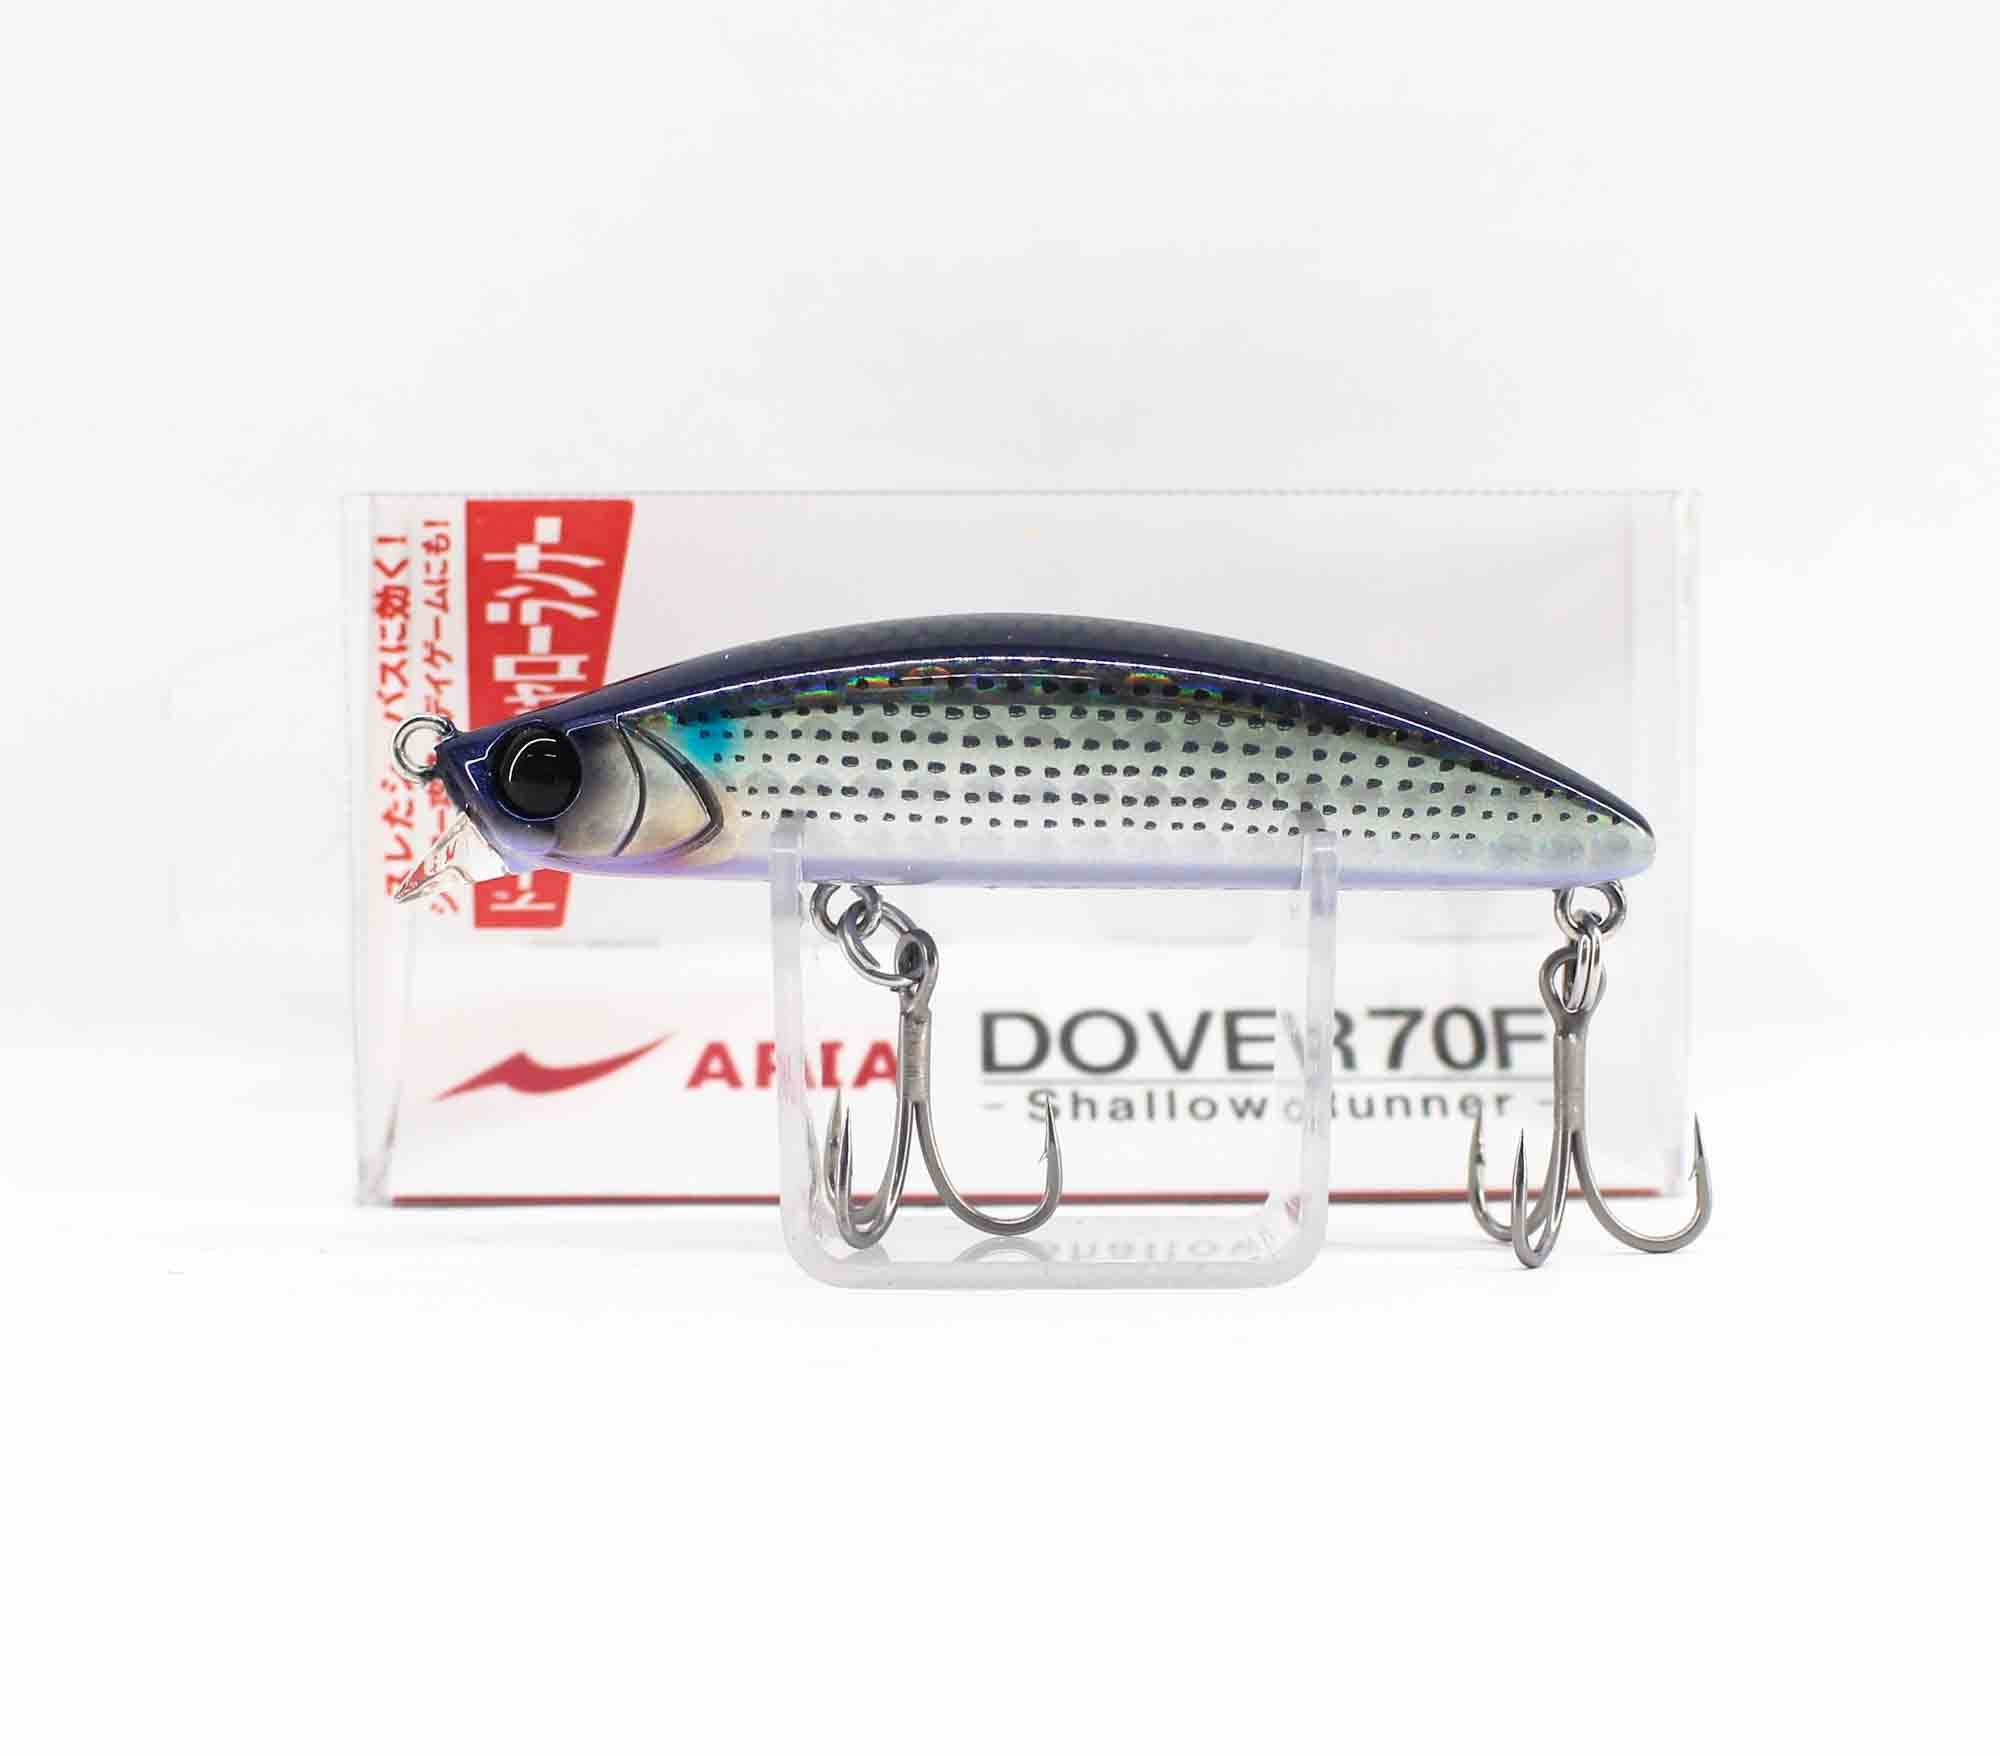 Apia Dover 70 F Floating Lure 03 (8610)